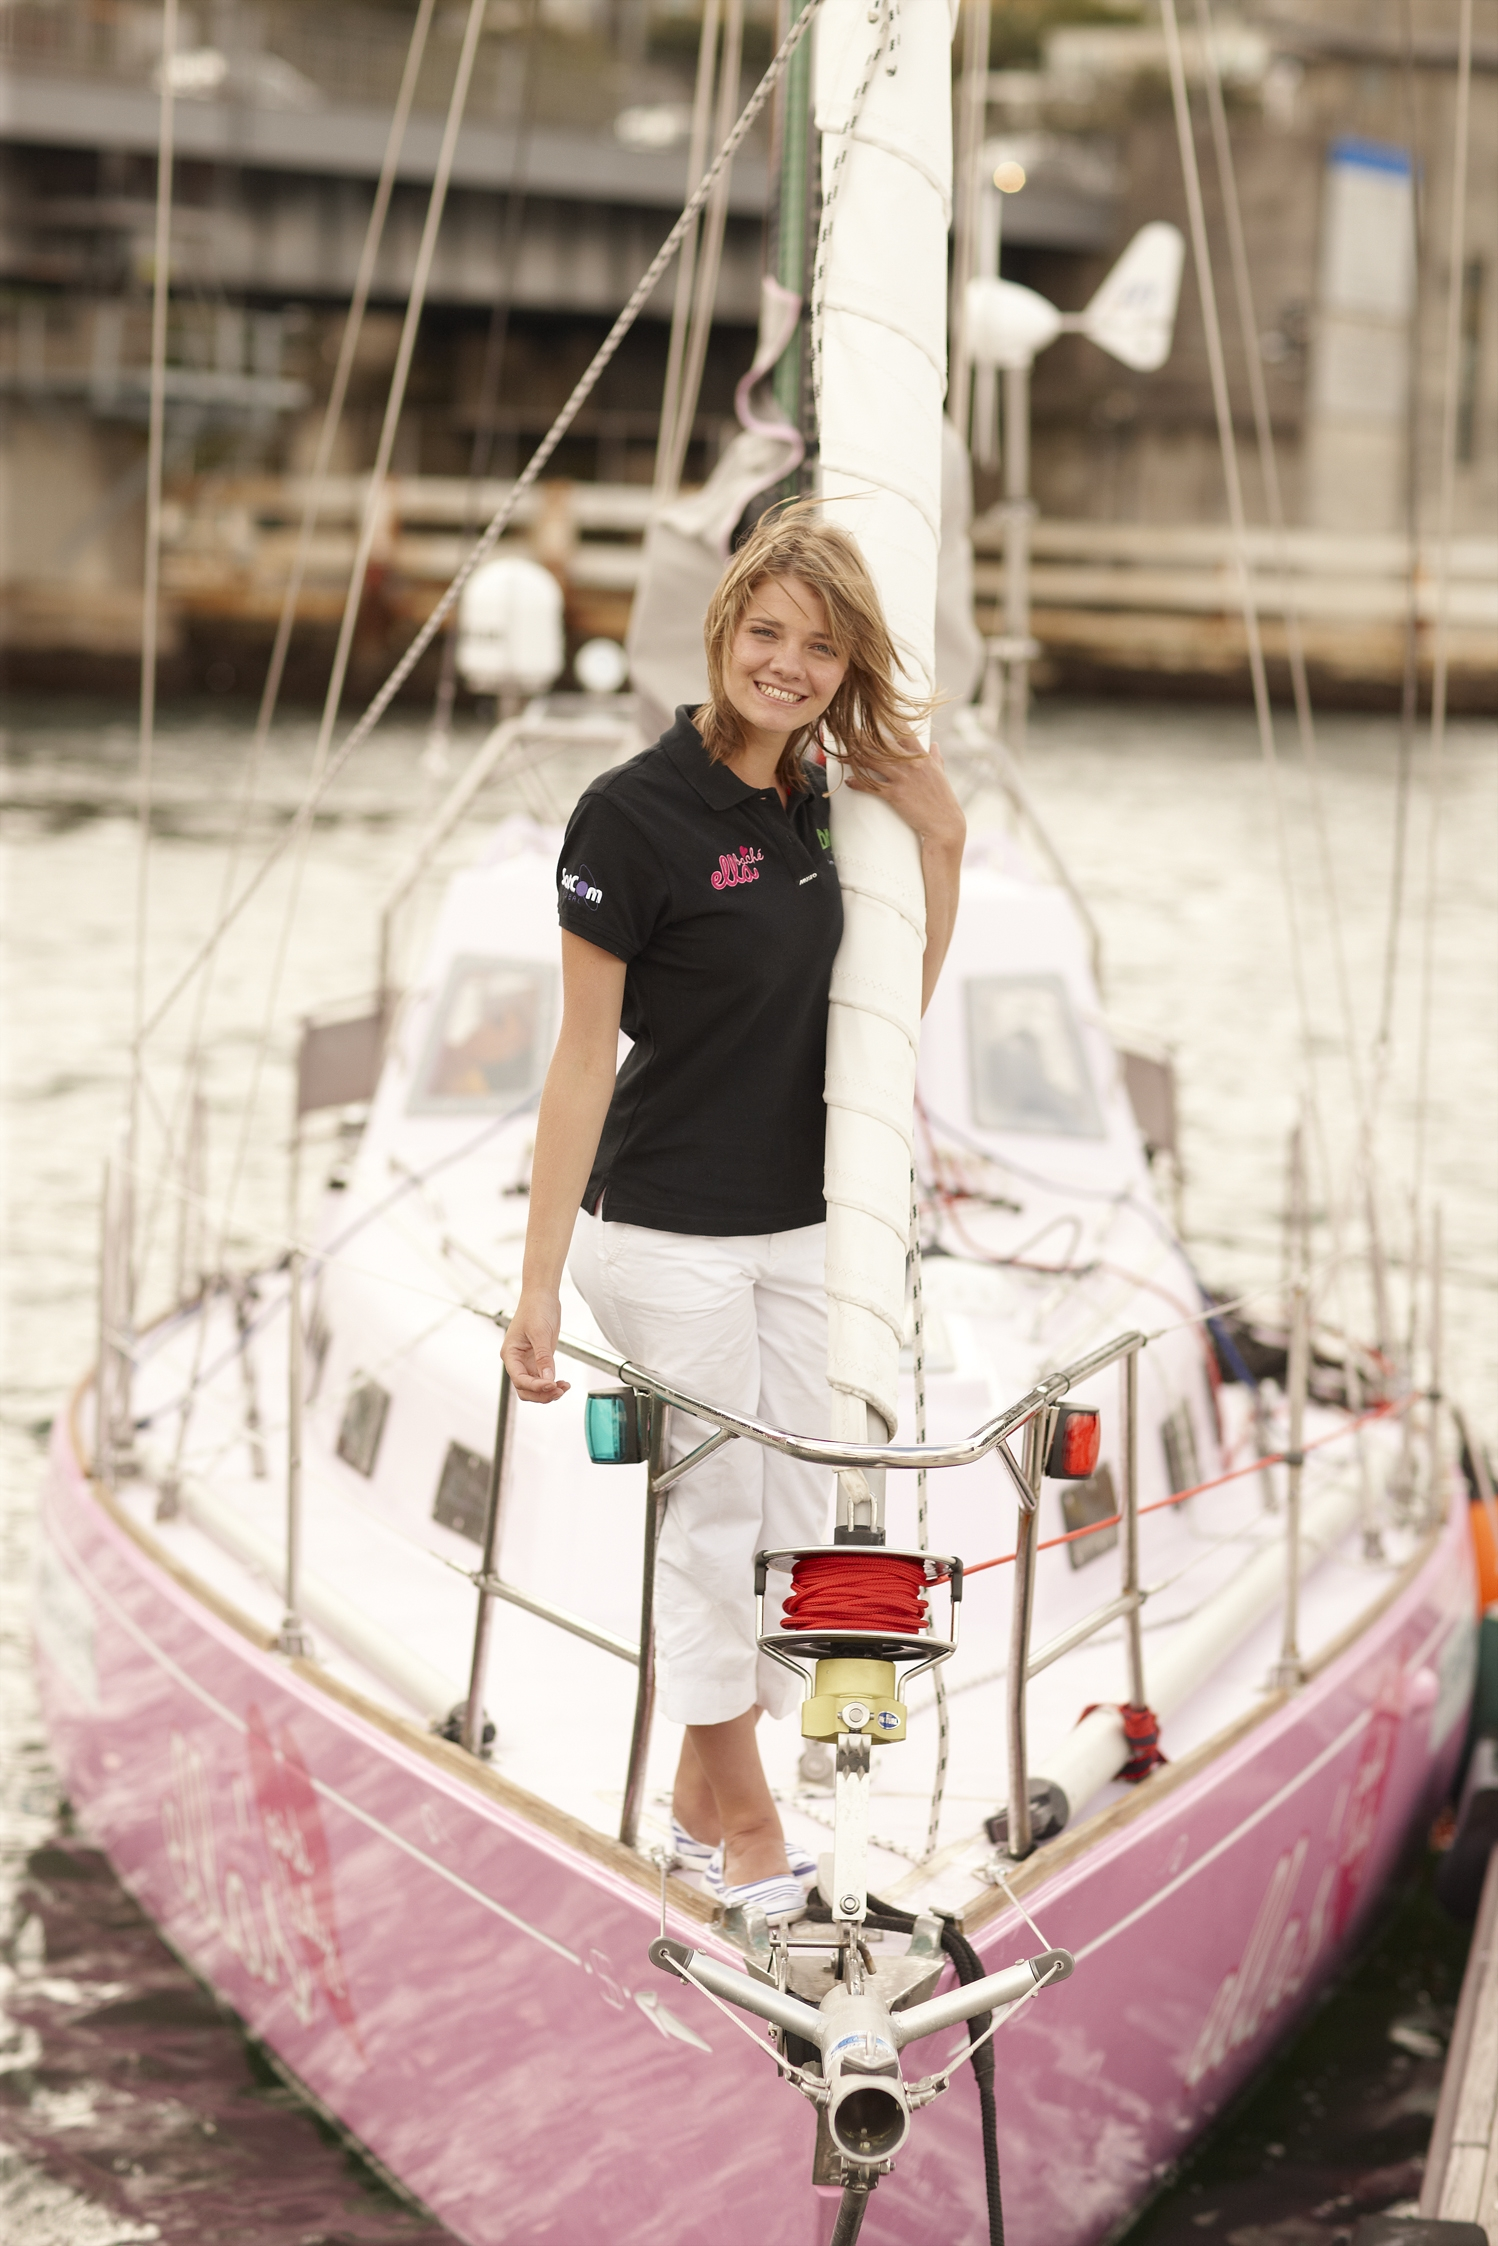 Jessica Watson - Completed a solo circumnavigation of the southern hemisphere at age 16